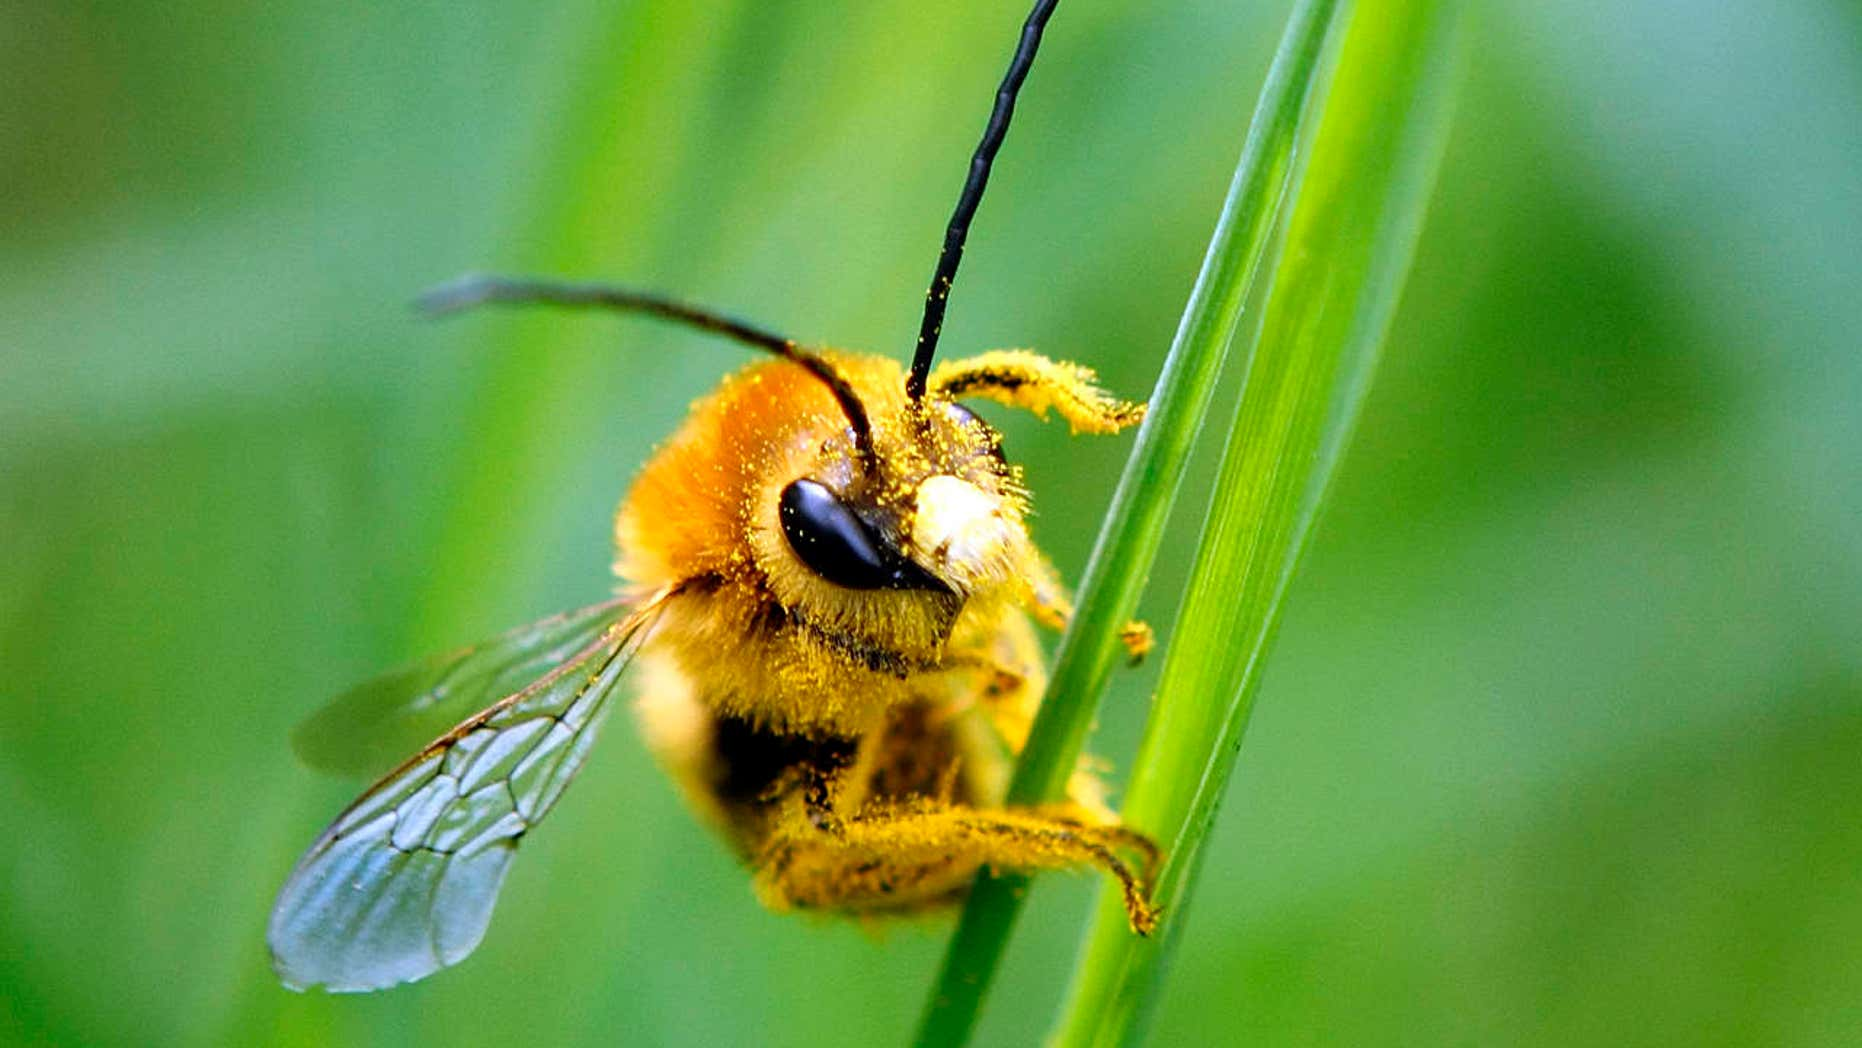 A bee is covered with pollen as it sits on a blade of grass at a lawn in Klosterneubur.